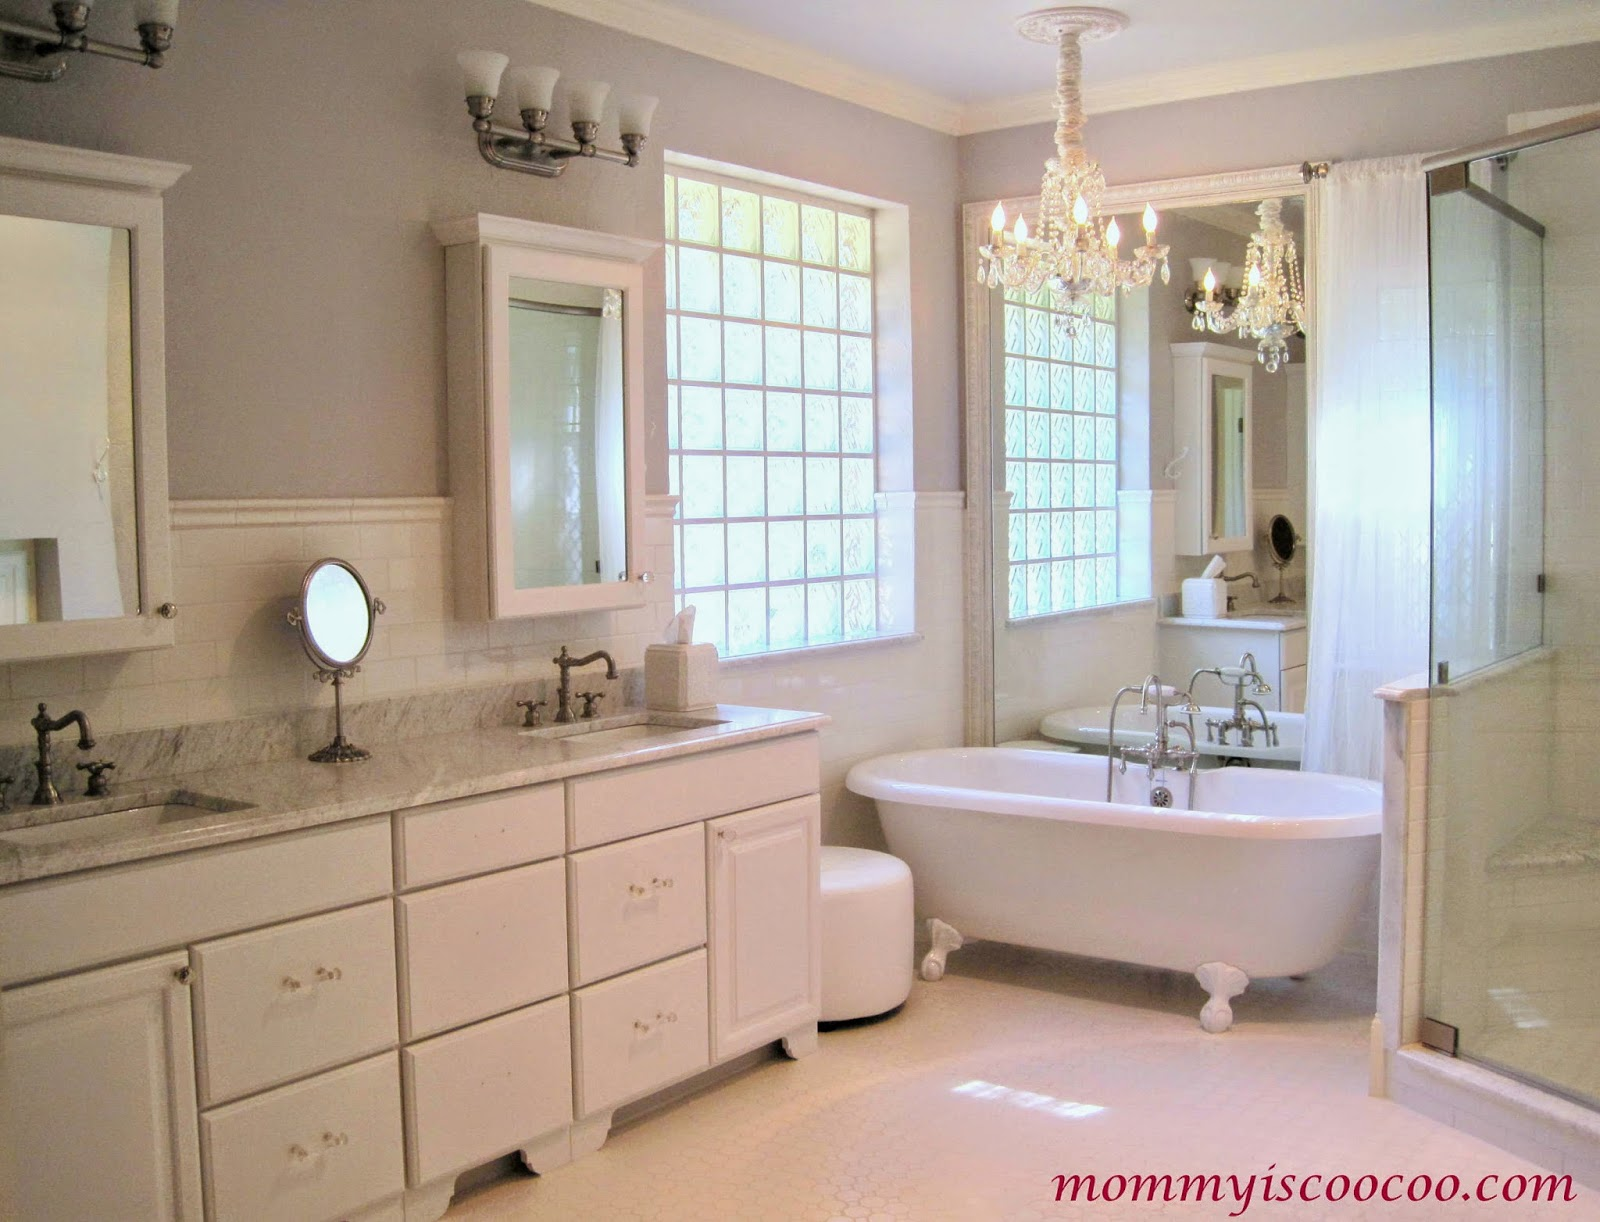 Epic white bathroom makeover with builder grade mirror framed behind tub Mommy is Coocoo on Remodelaholic